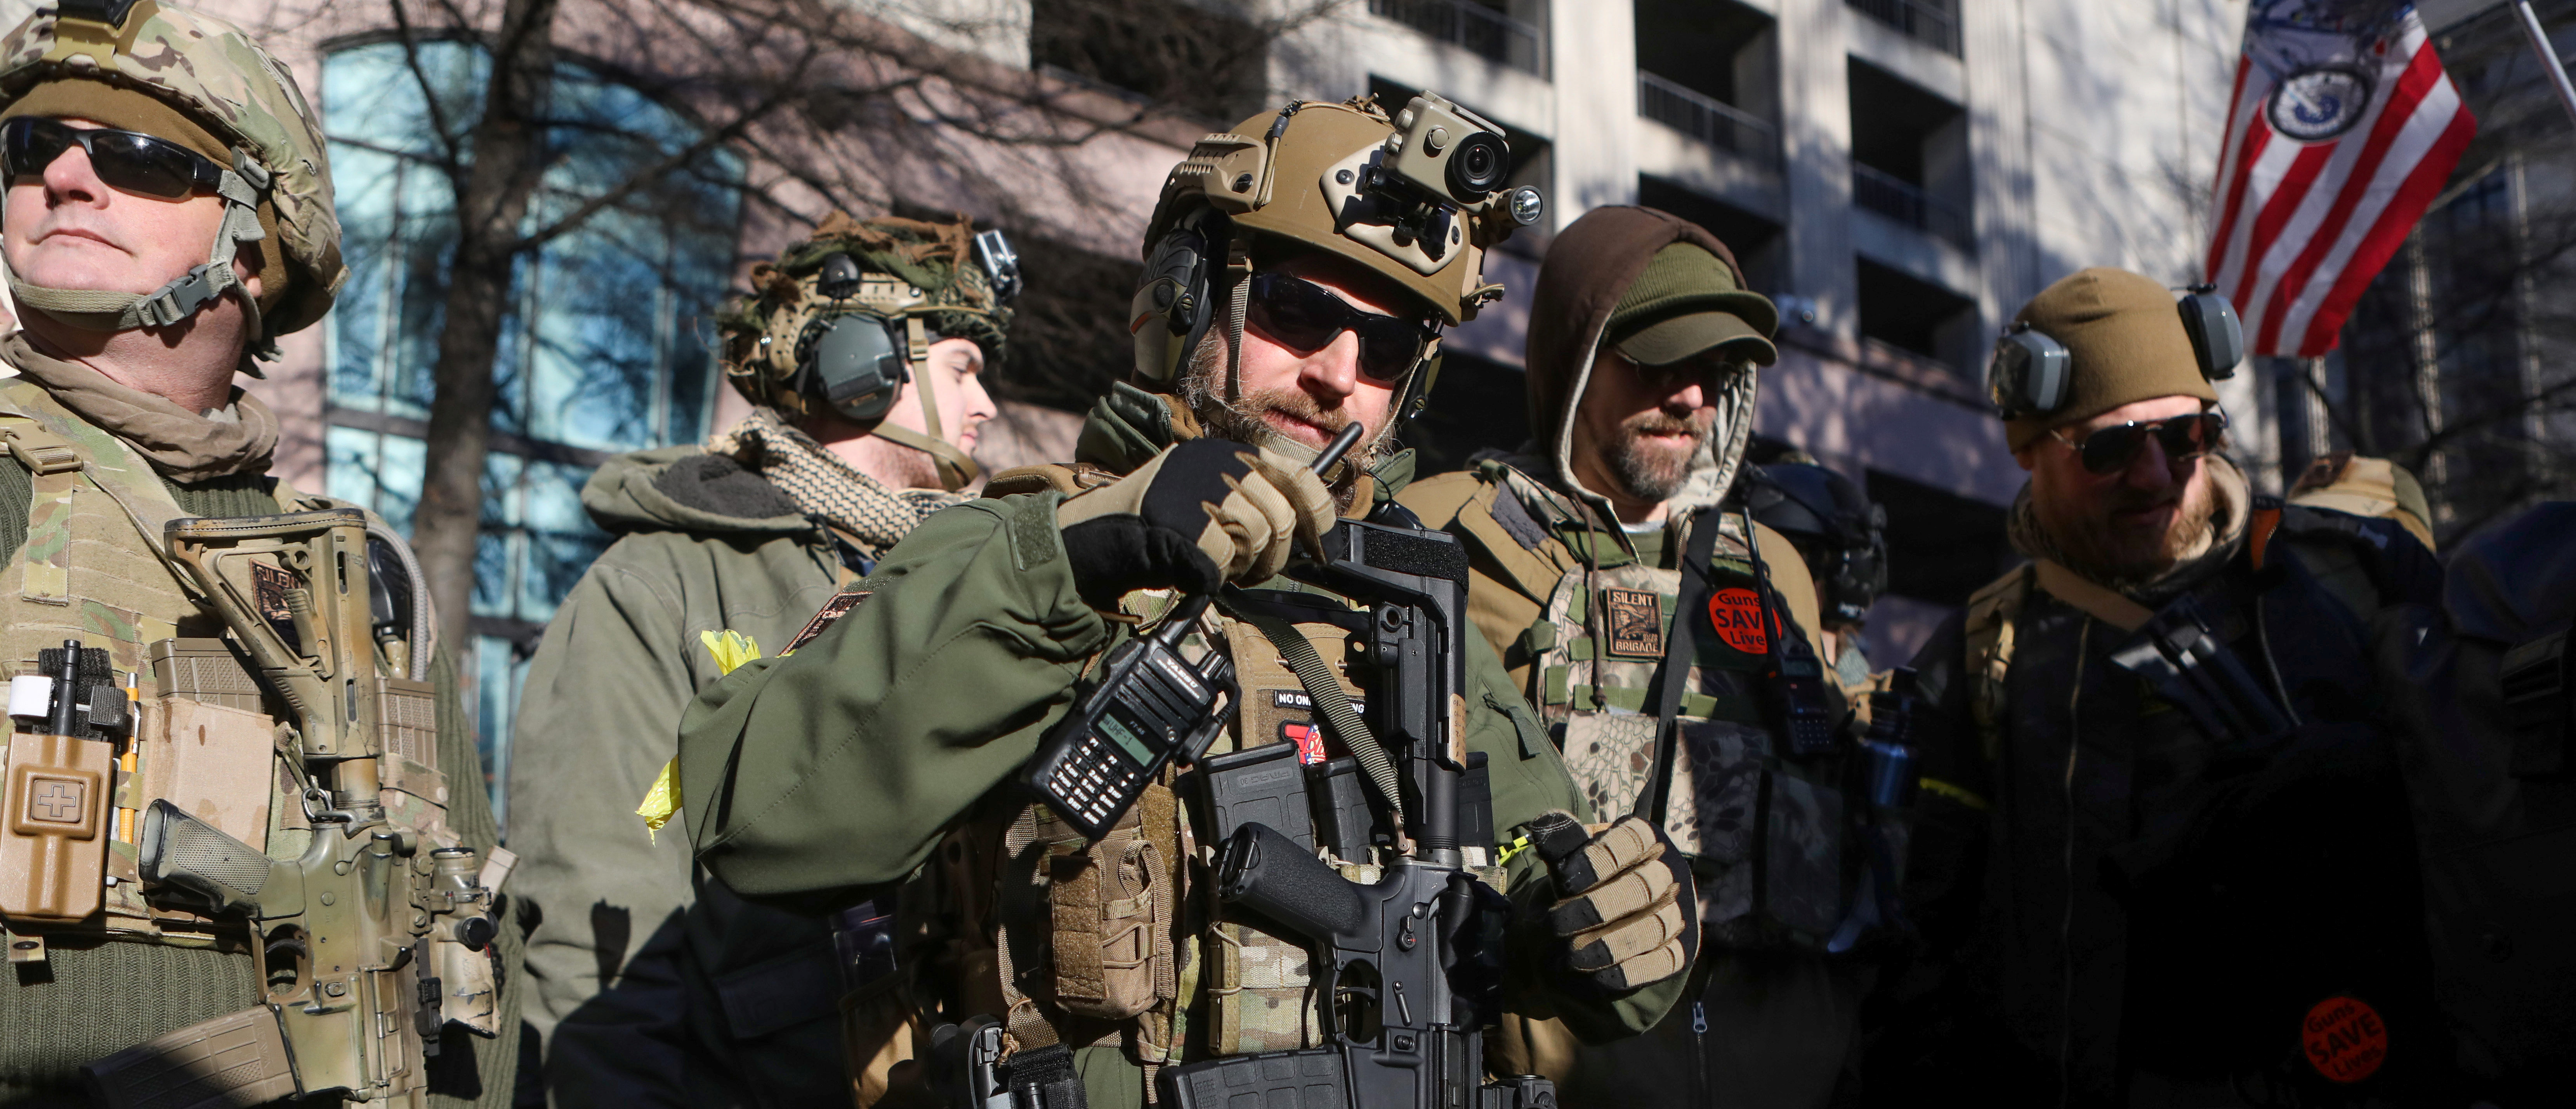 Gun rights advocates and militia members attend rally in Richmond, Virginia, U.S. January 20, 2020. (REUTERS/Jim Urquhart)